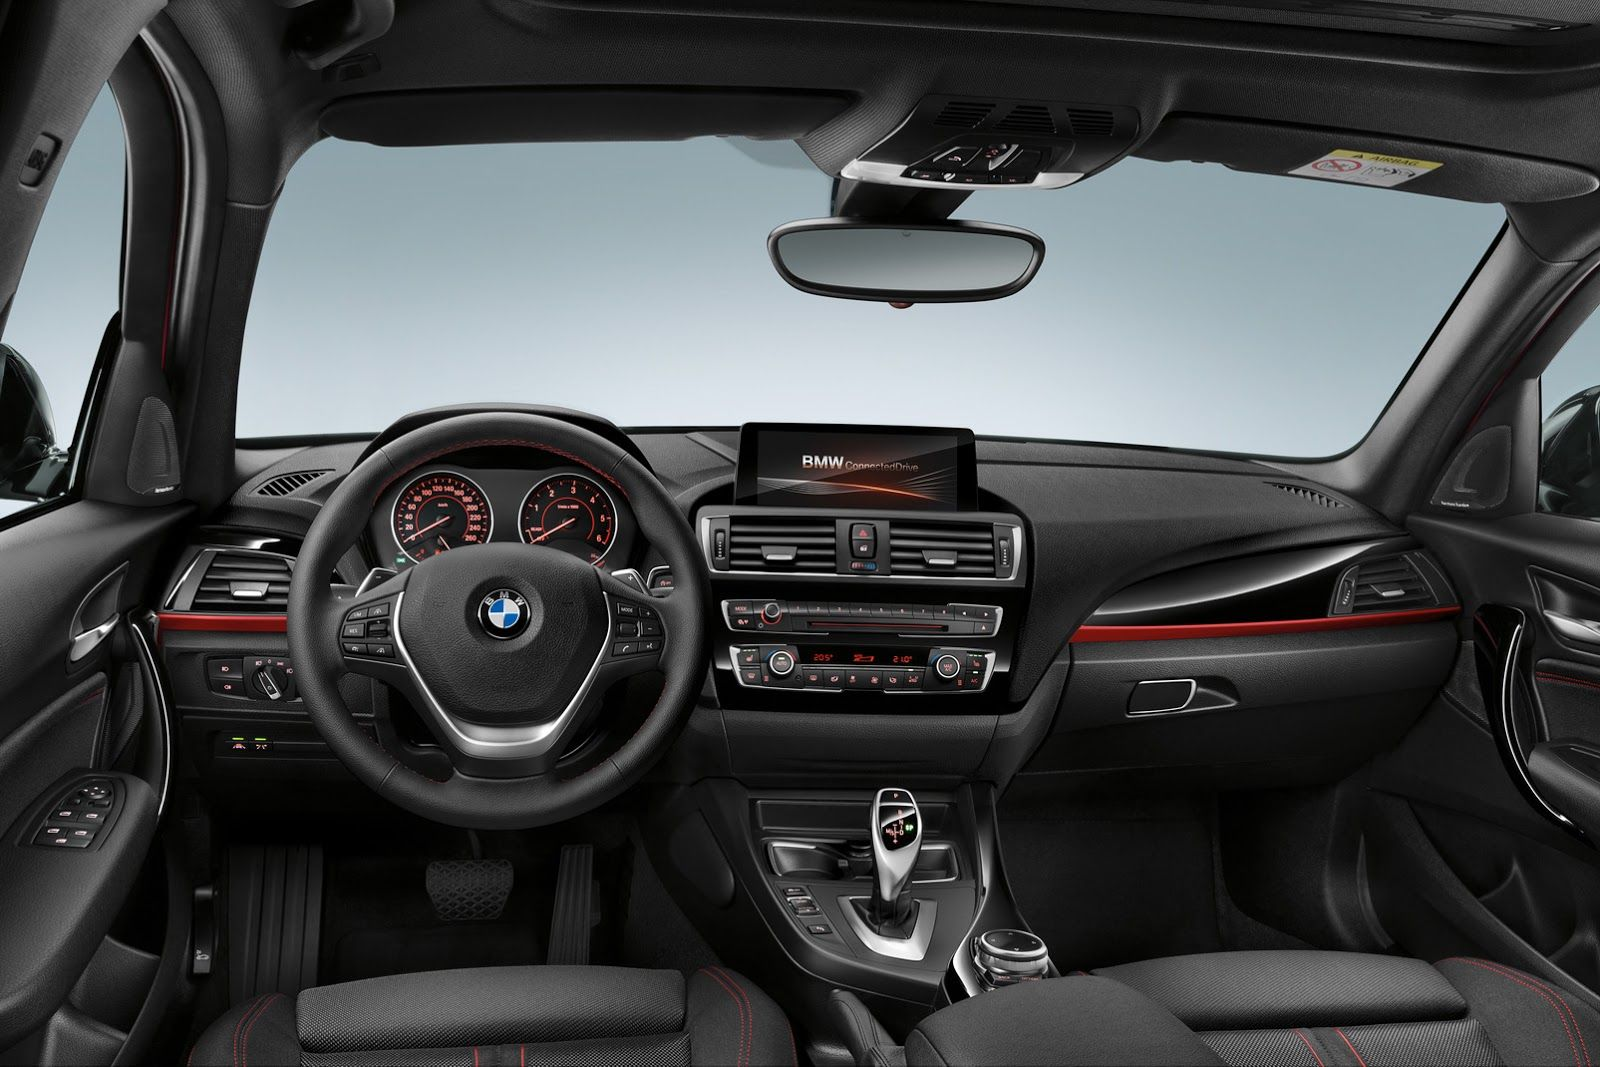 2016 Bmw 1 Series Facelift This Is It In 100 Photos W Video